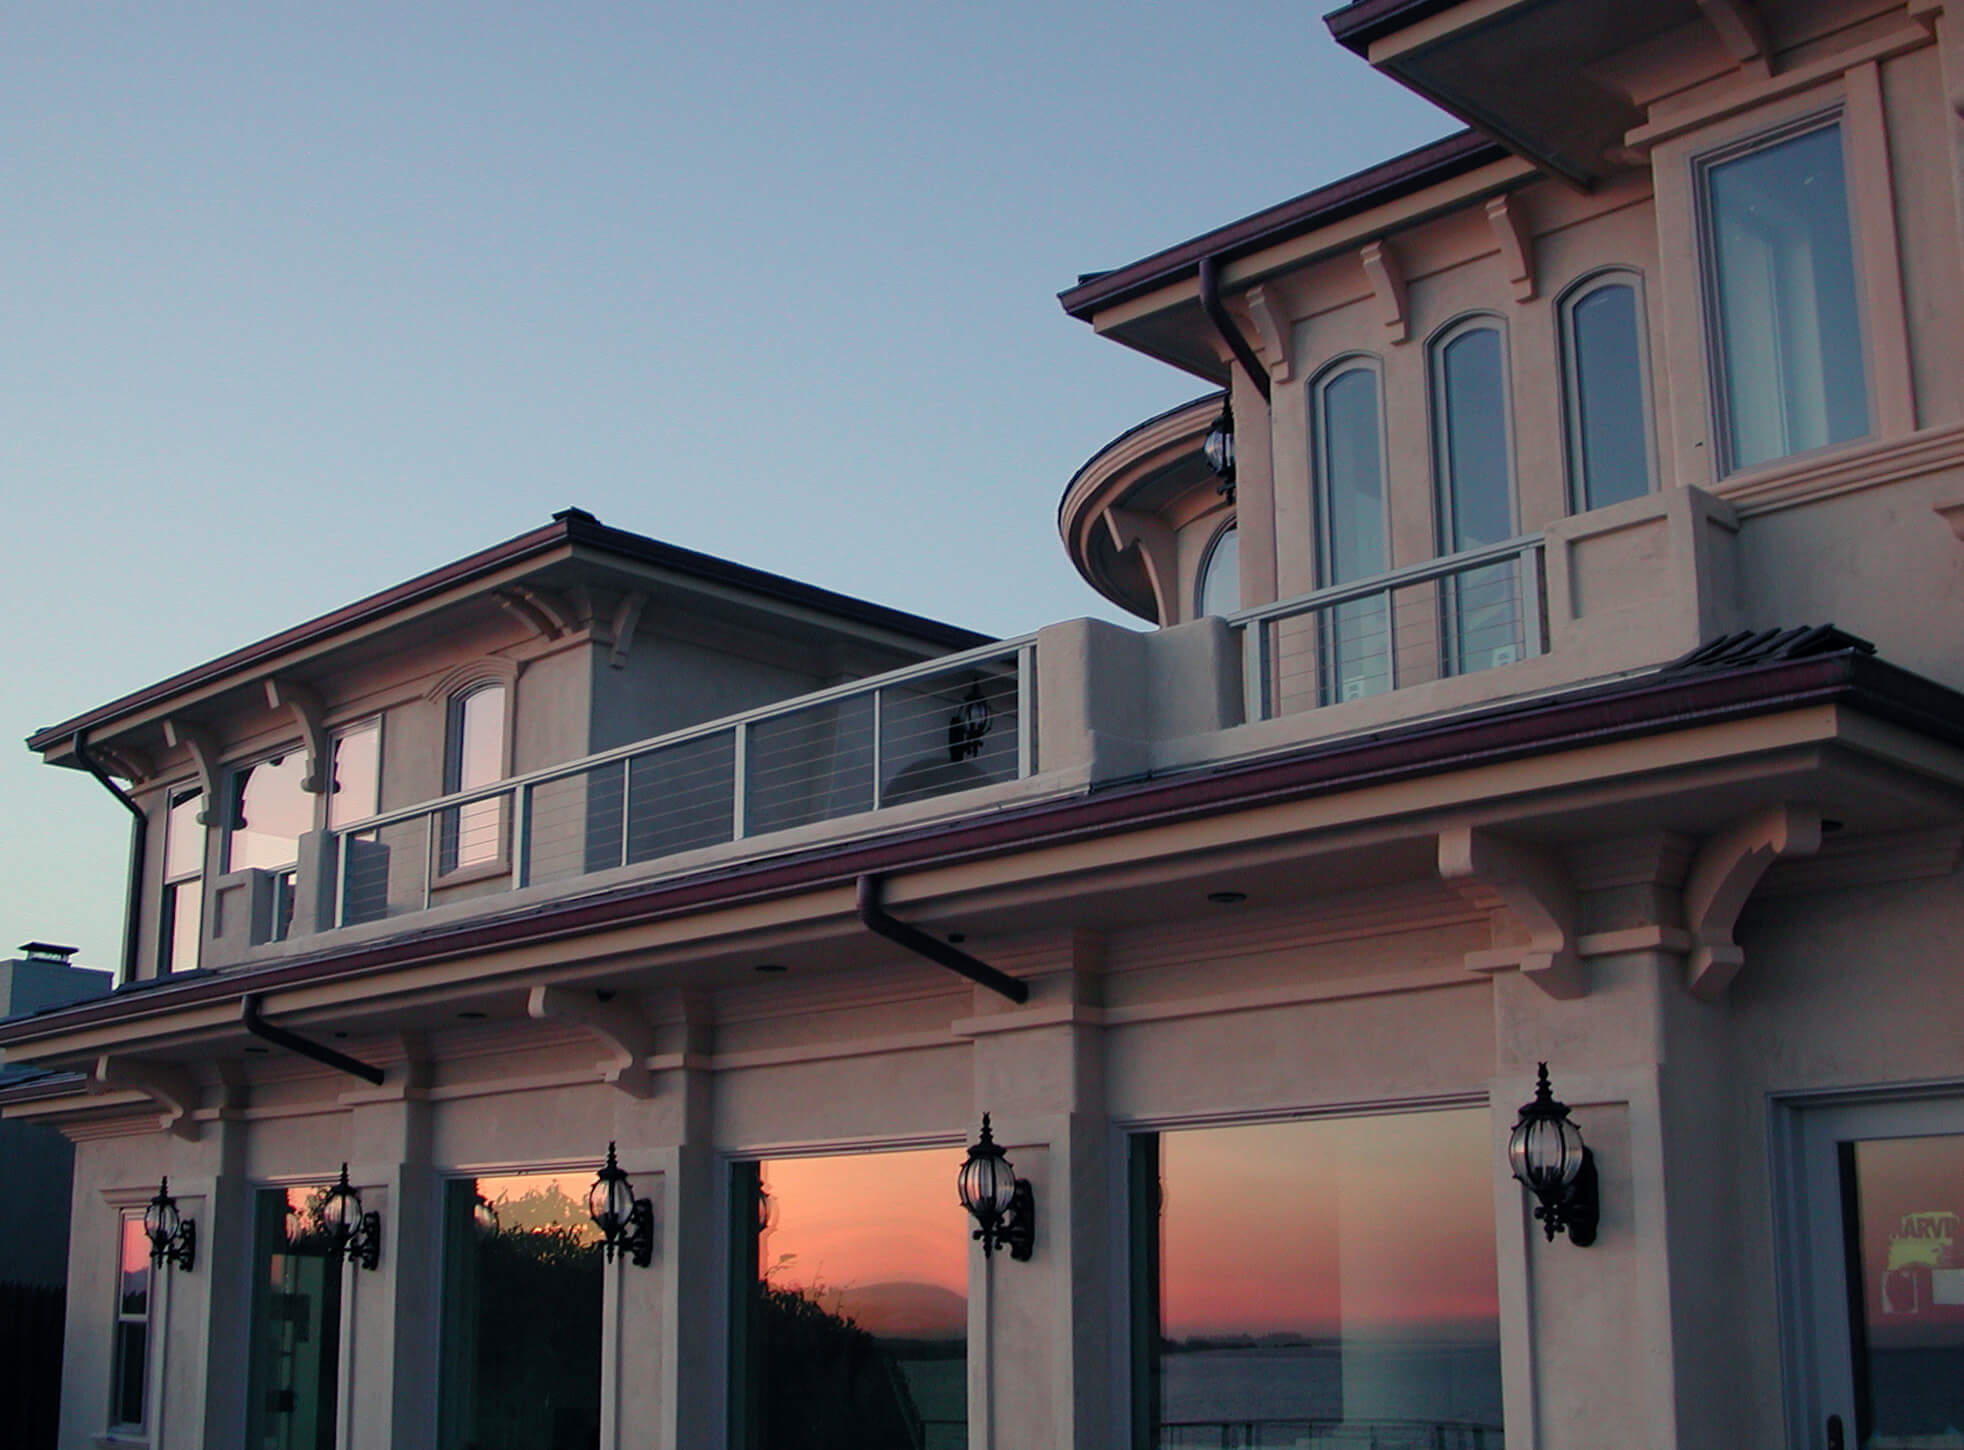 California beach house in Tuscan style with slim cable railing installed on the balcony